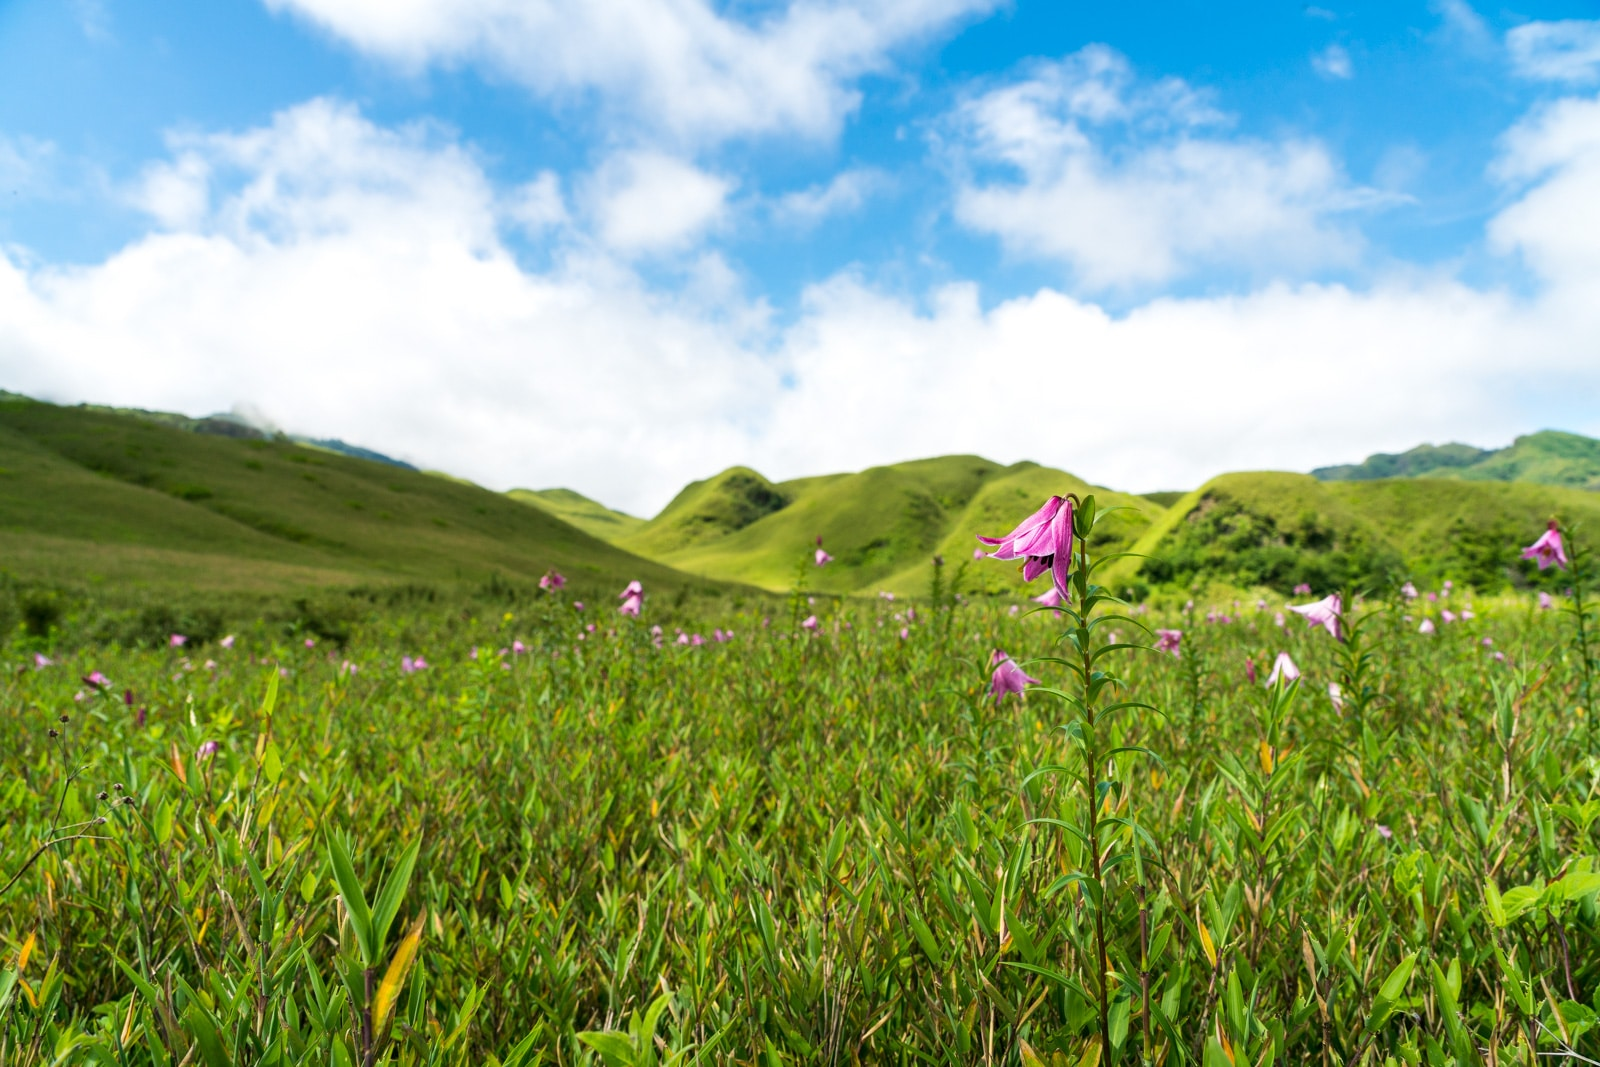 How to get to Dzukou Valley from Kohima, Nagaland, India - Pink summer flowers beginning to bloom in Dzukou Valley - Lost With Purpose